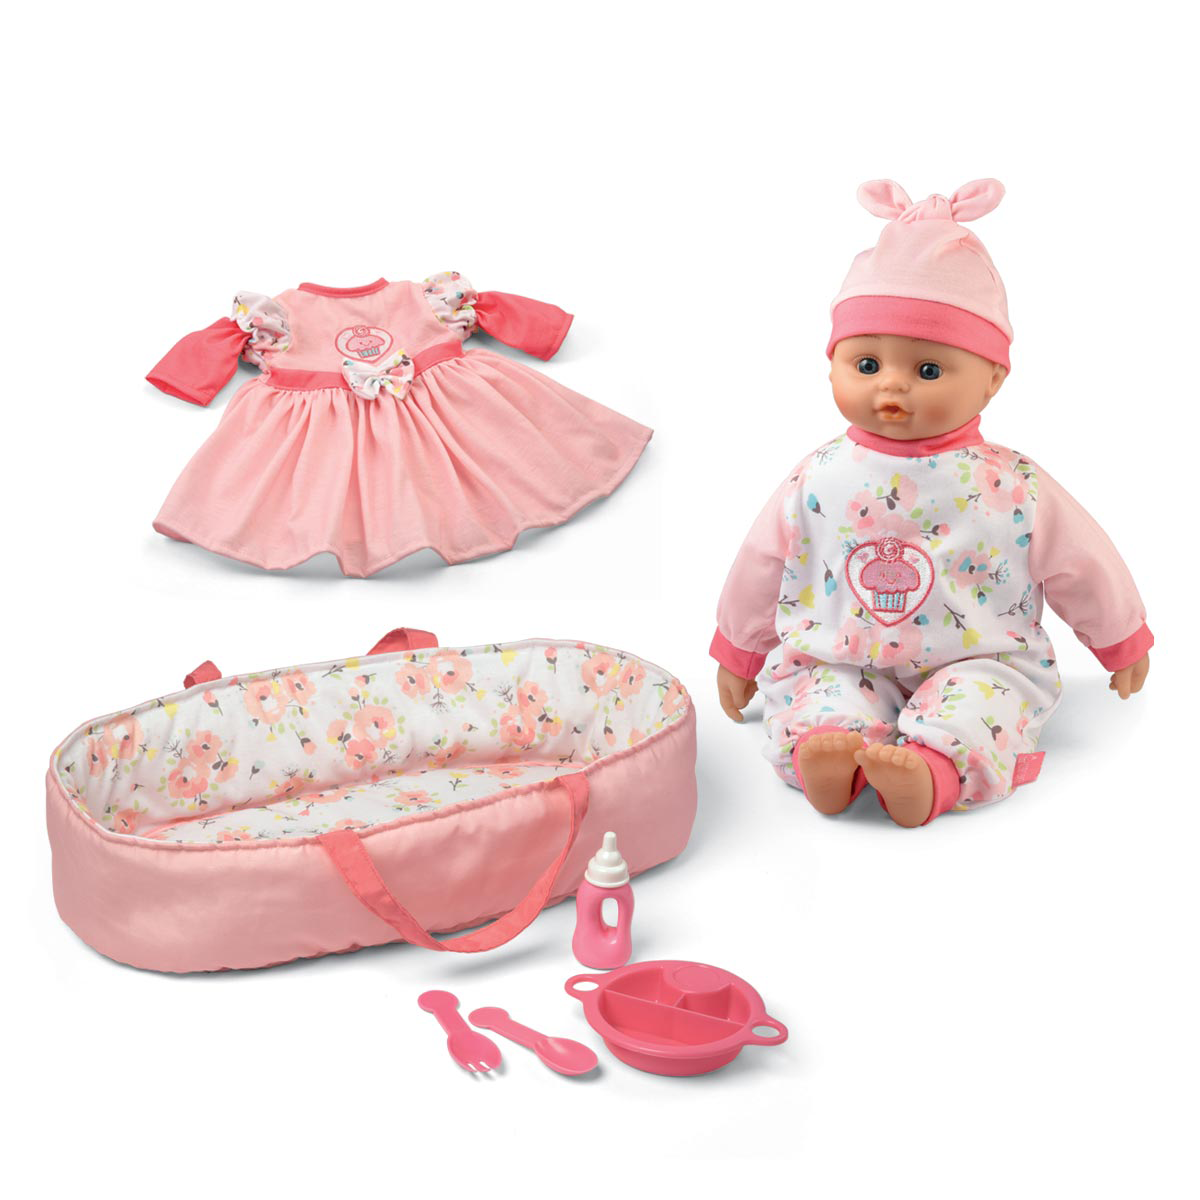 Cupcake Dolly Collection Set from Early Learning Center